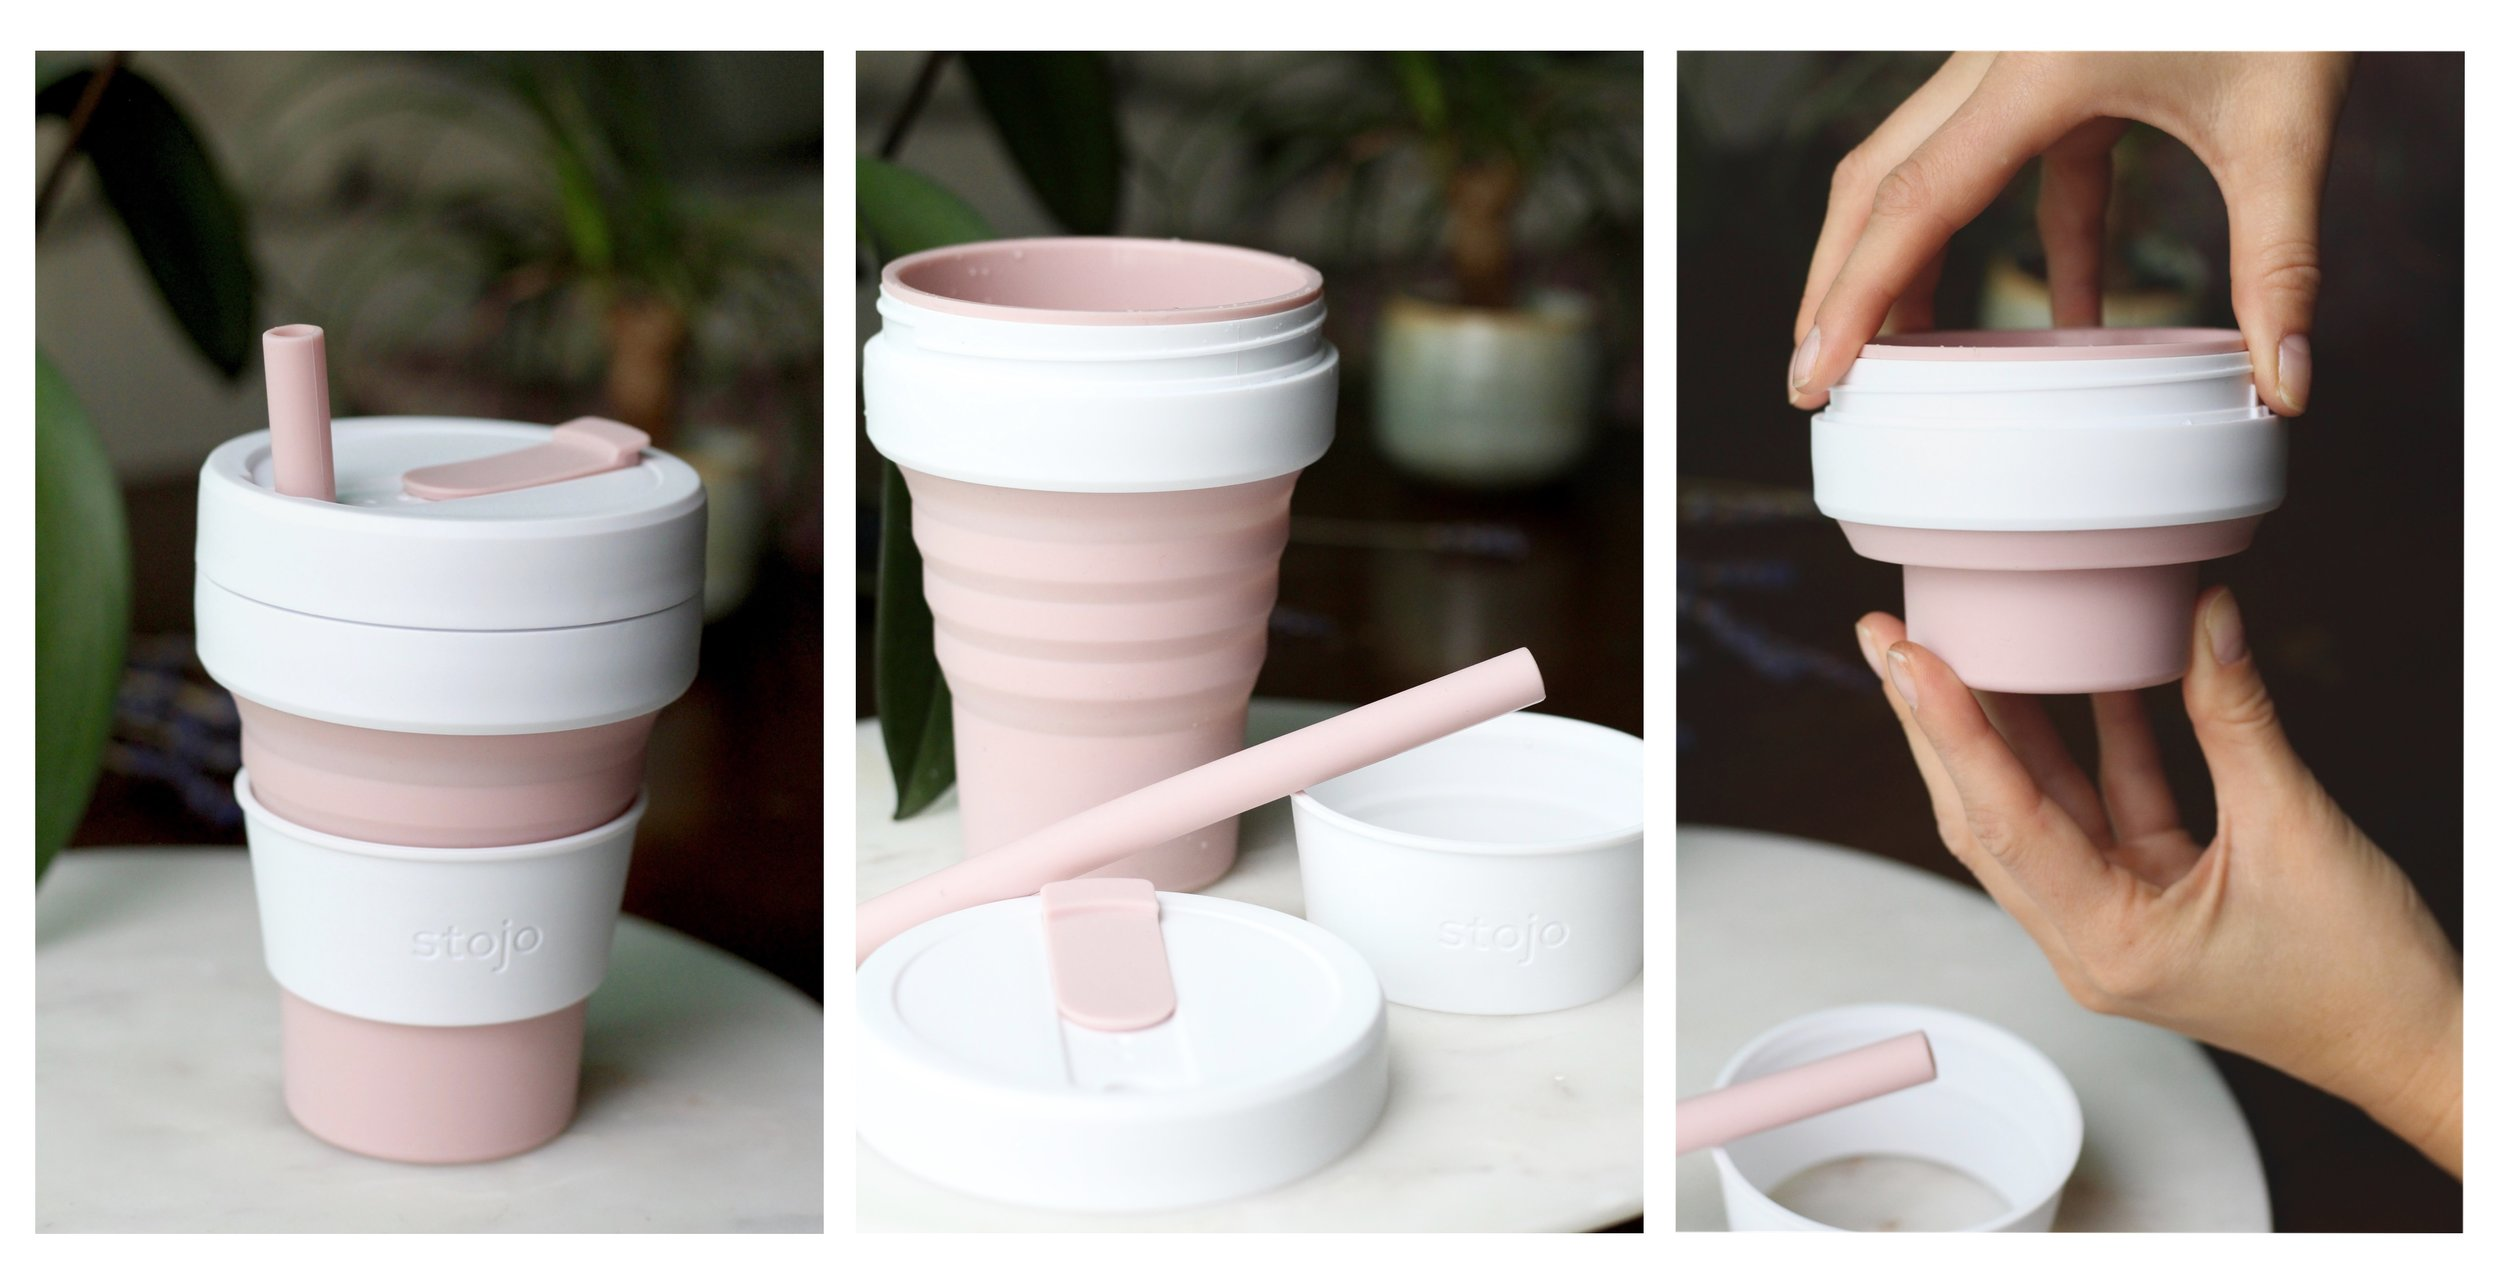 Stojo - reusable and collapsible cup with straw.